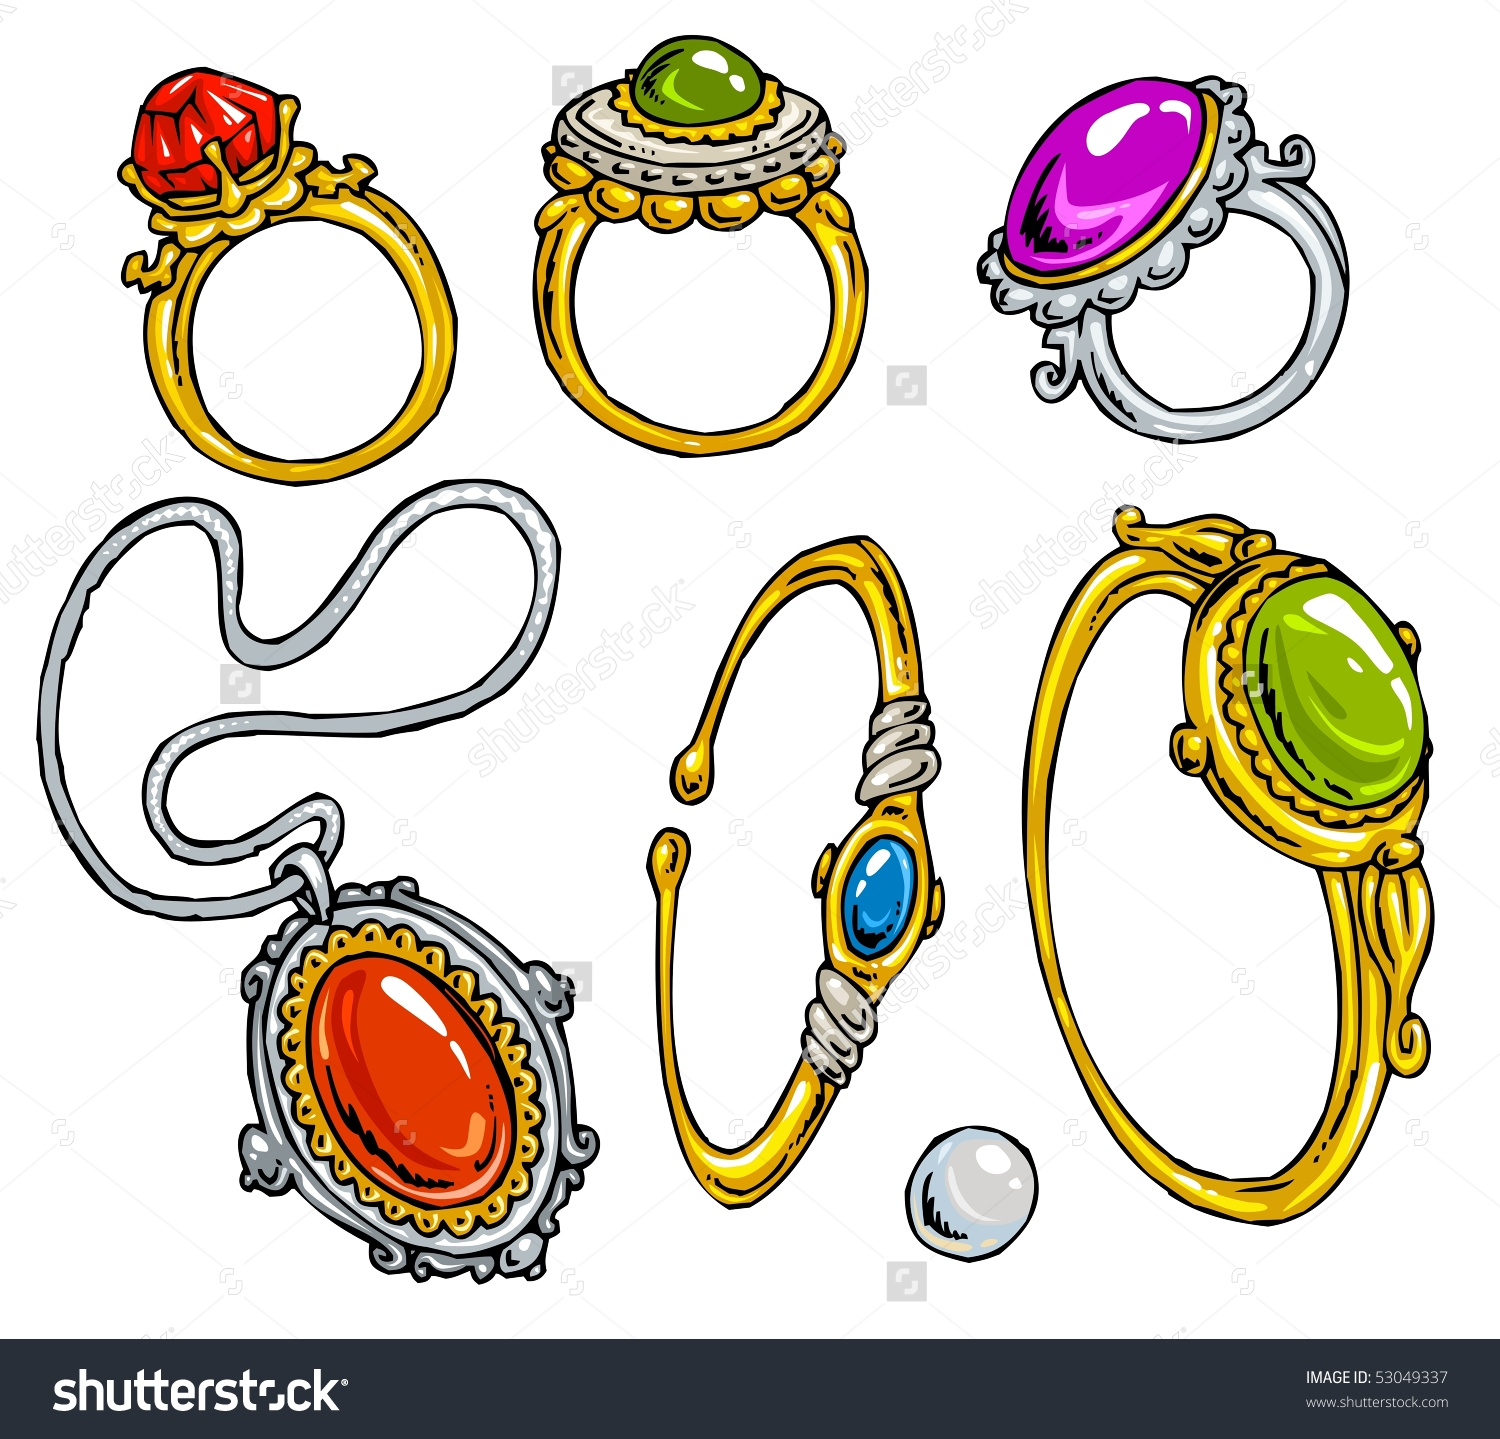 Jewelry clipart #6, Download drawings